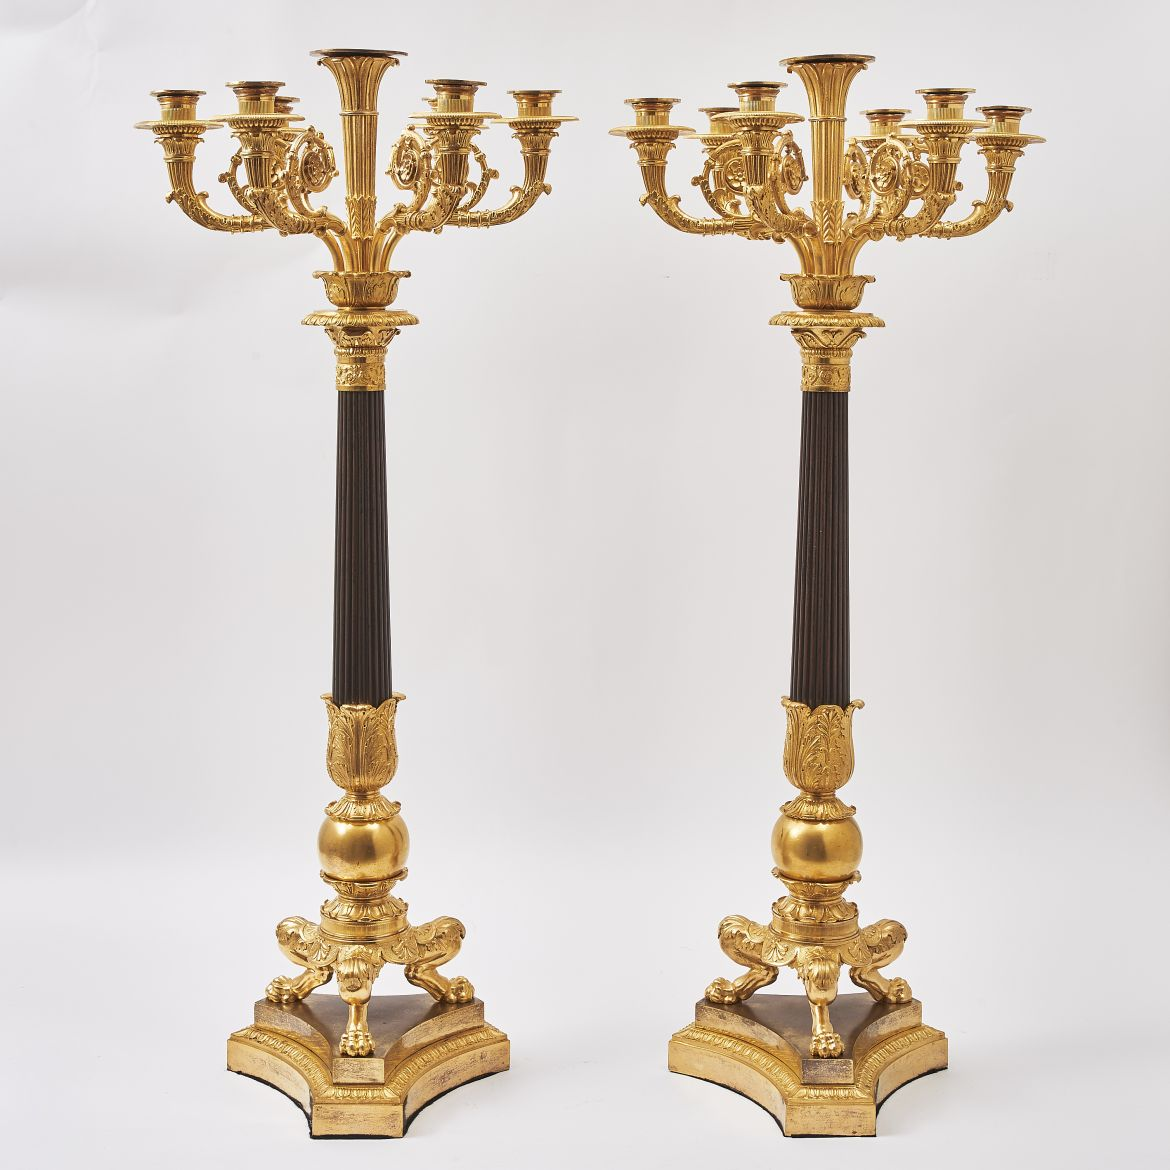 Thomire Louis Philippe Candelabra